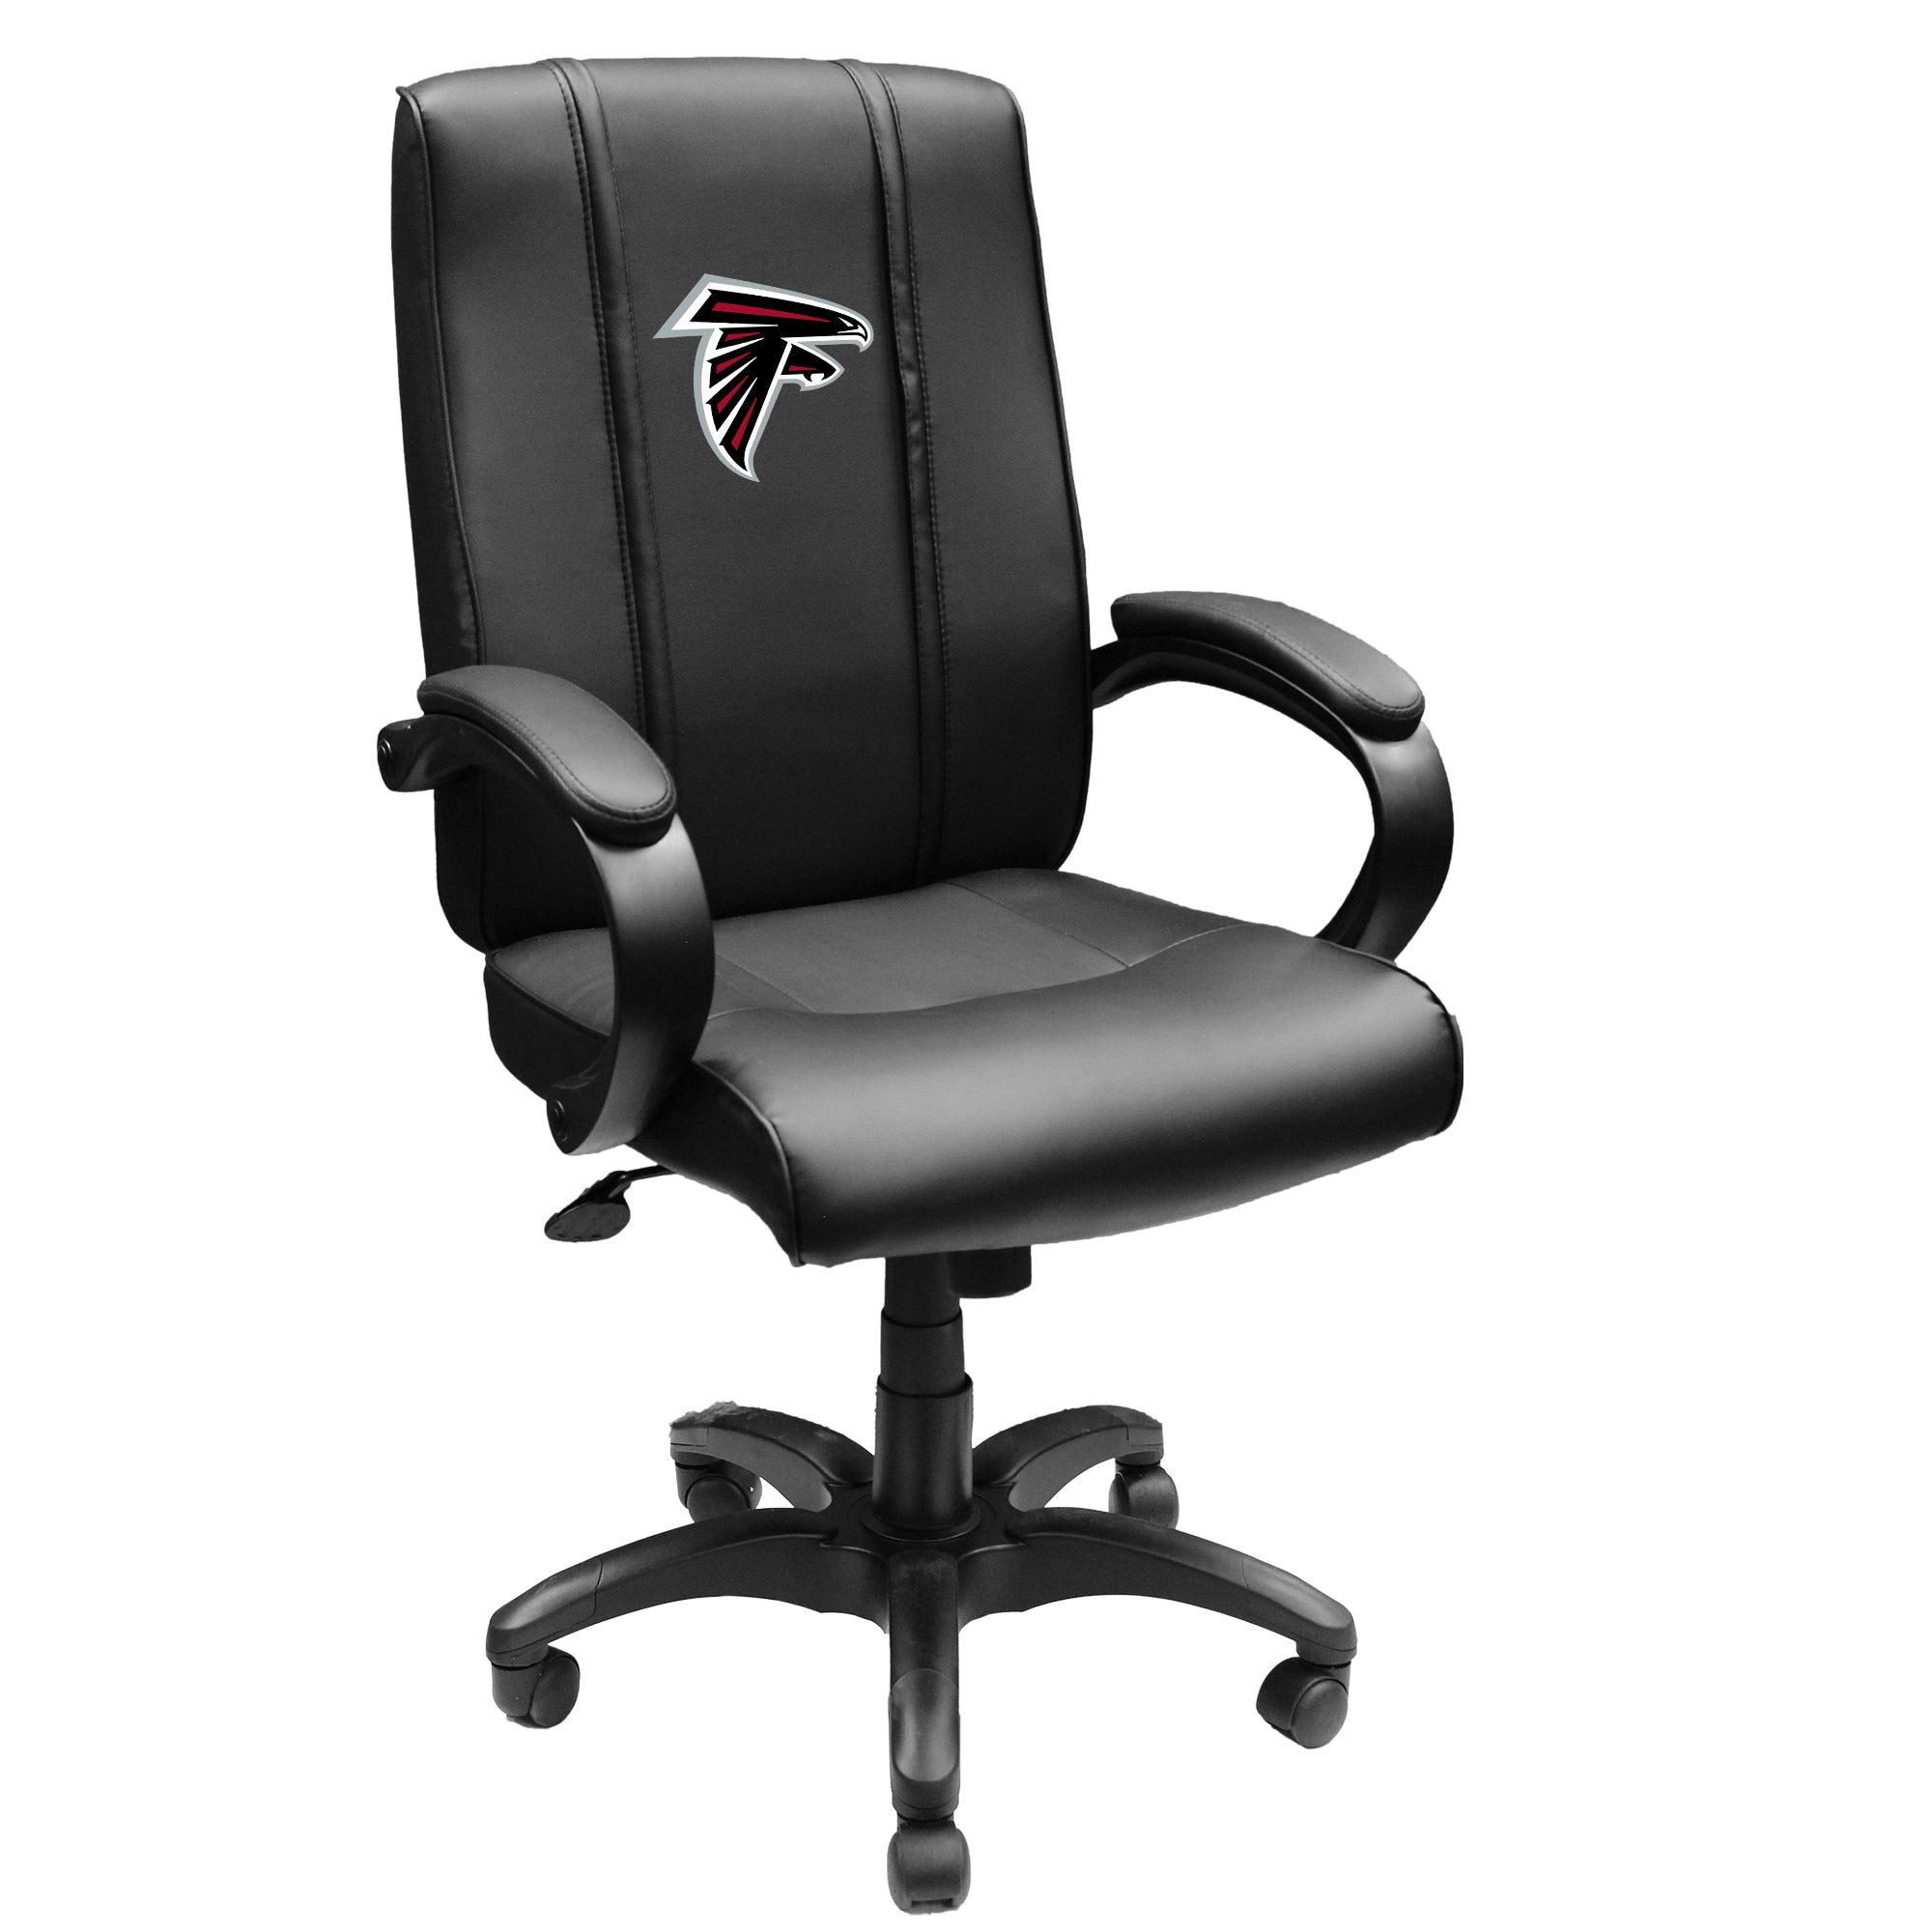 Office Chair 1000 with Atlanta Falcons Primary Logo